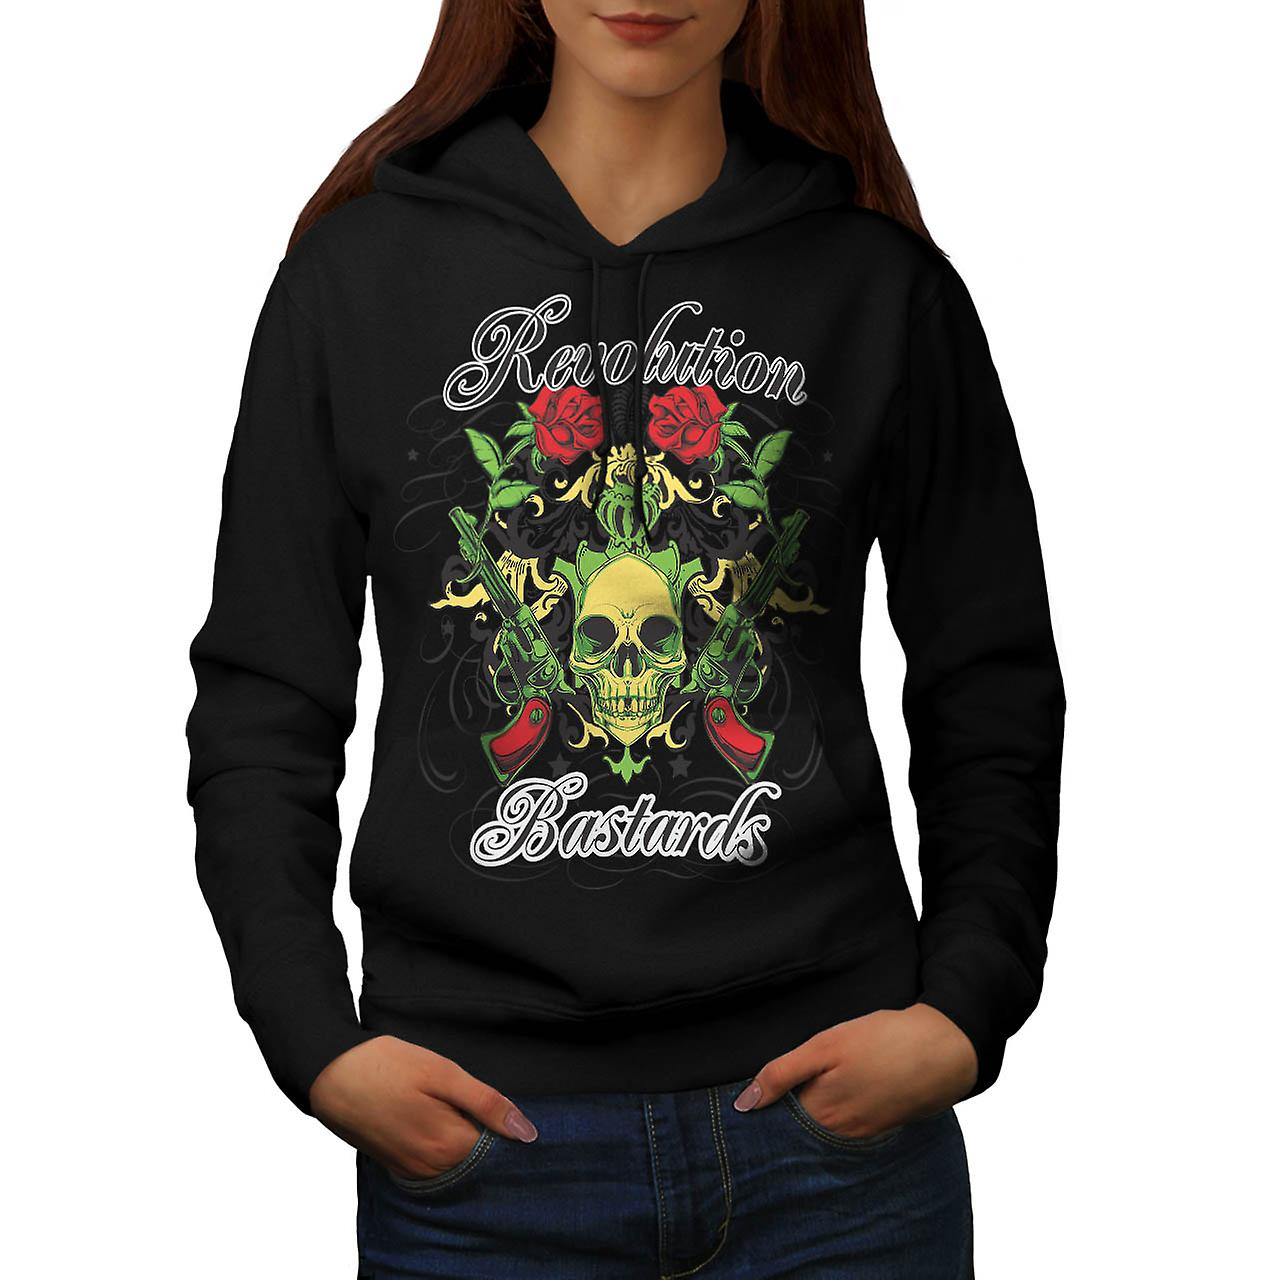 Revolution Bastards Roses Guns Women Black Hoodie | Wellcoda